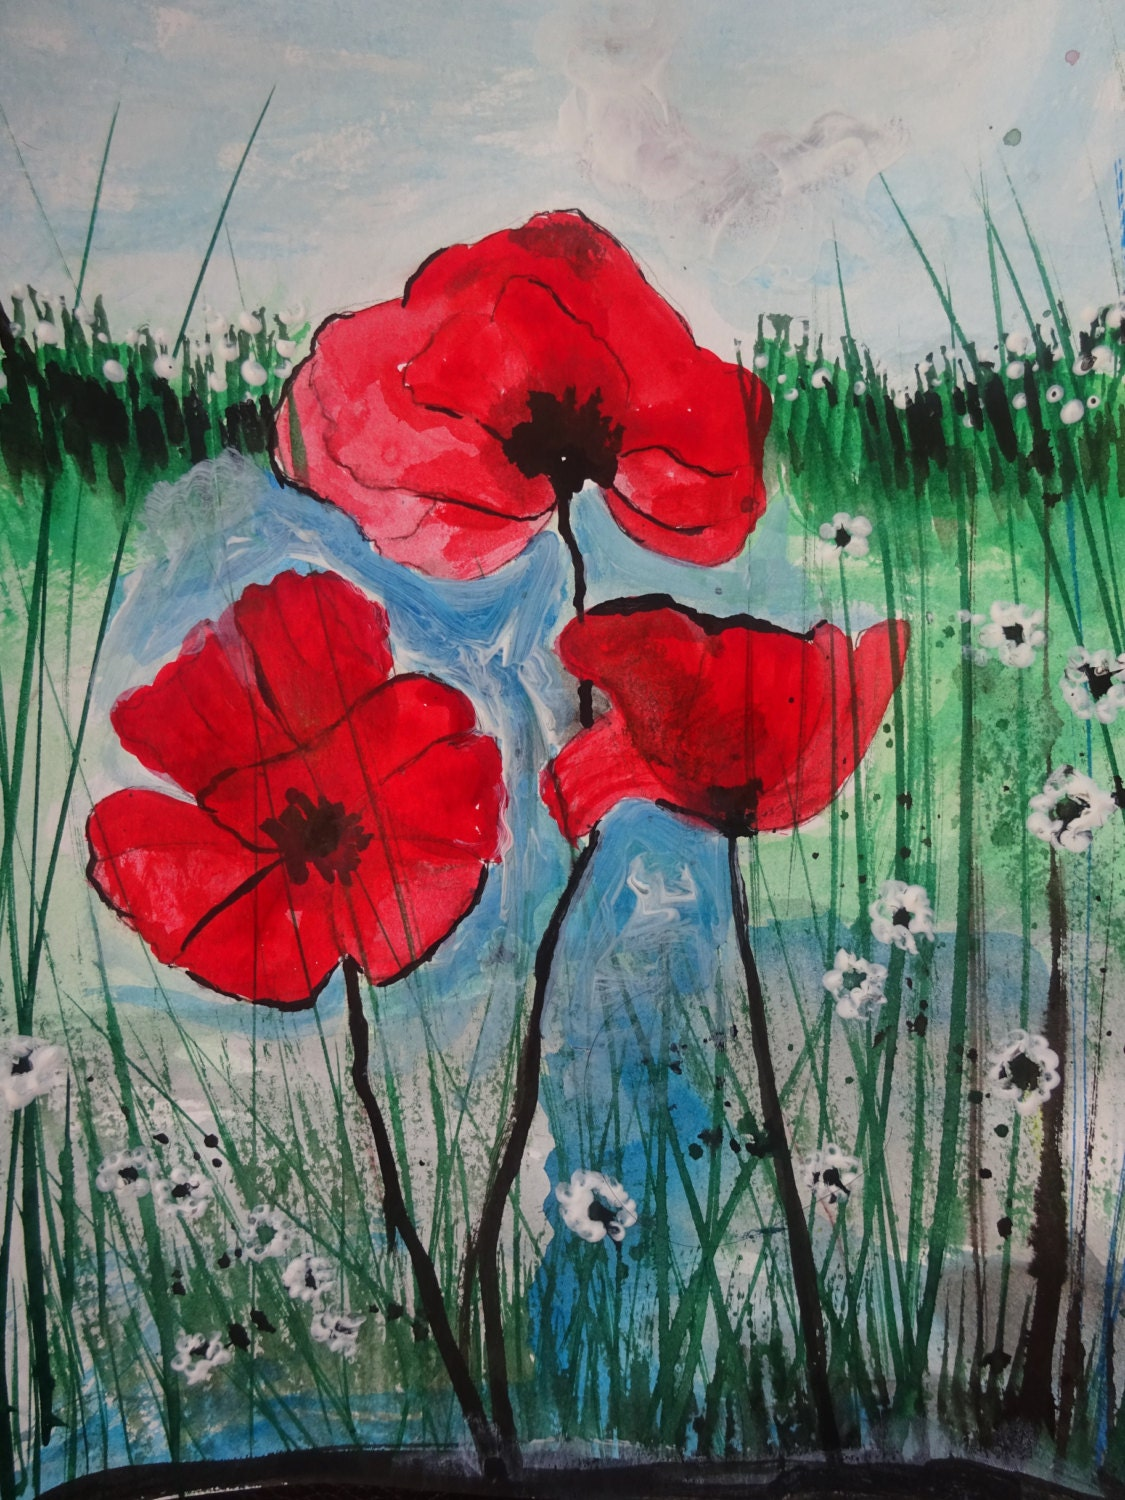 Wall Art Red Flower : Daisies wall art red poppies flower by affordableartumi on